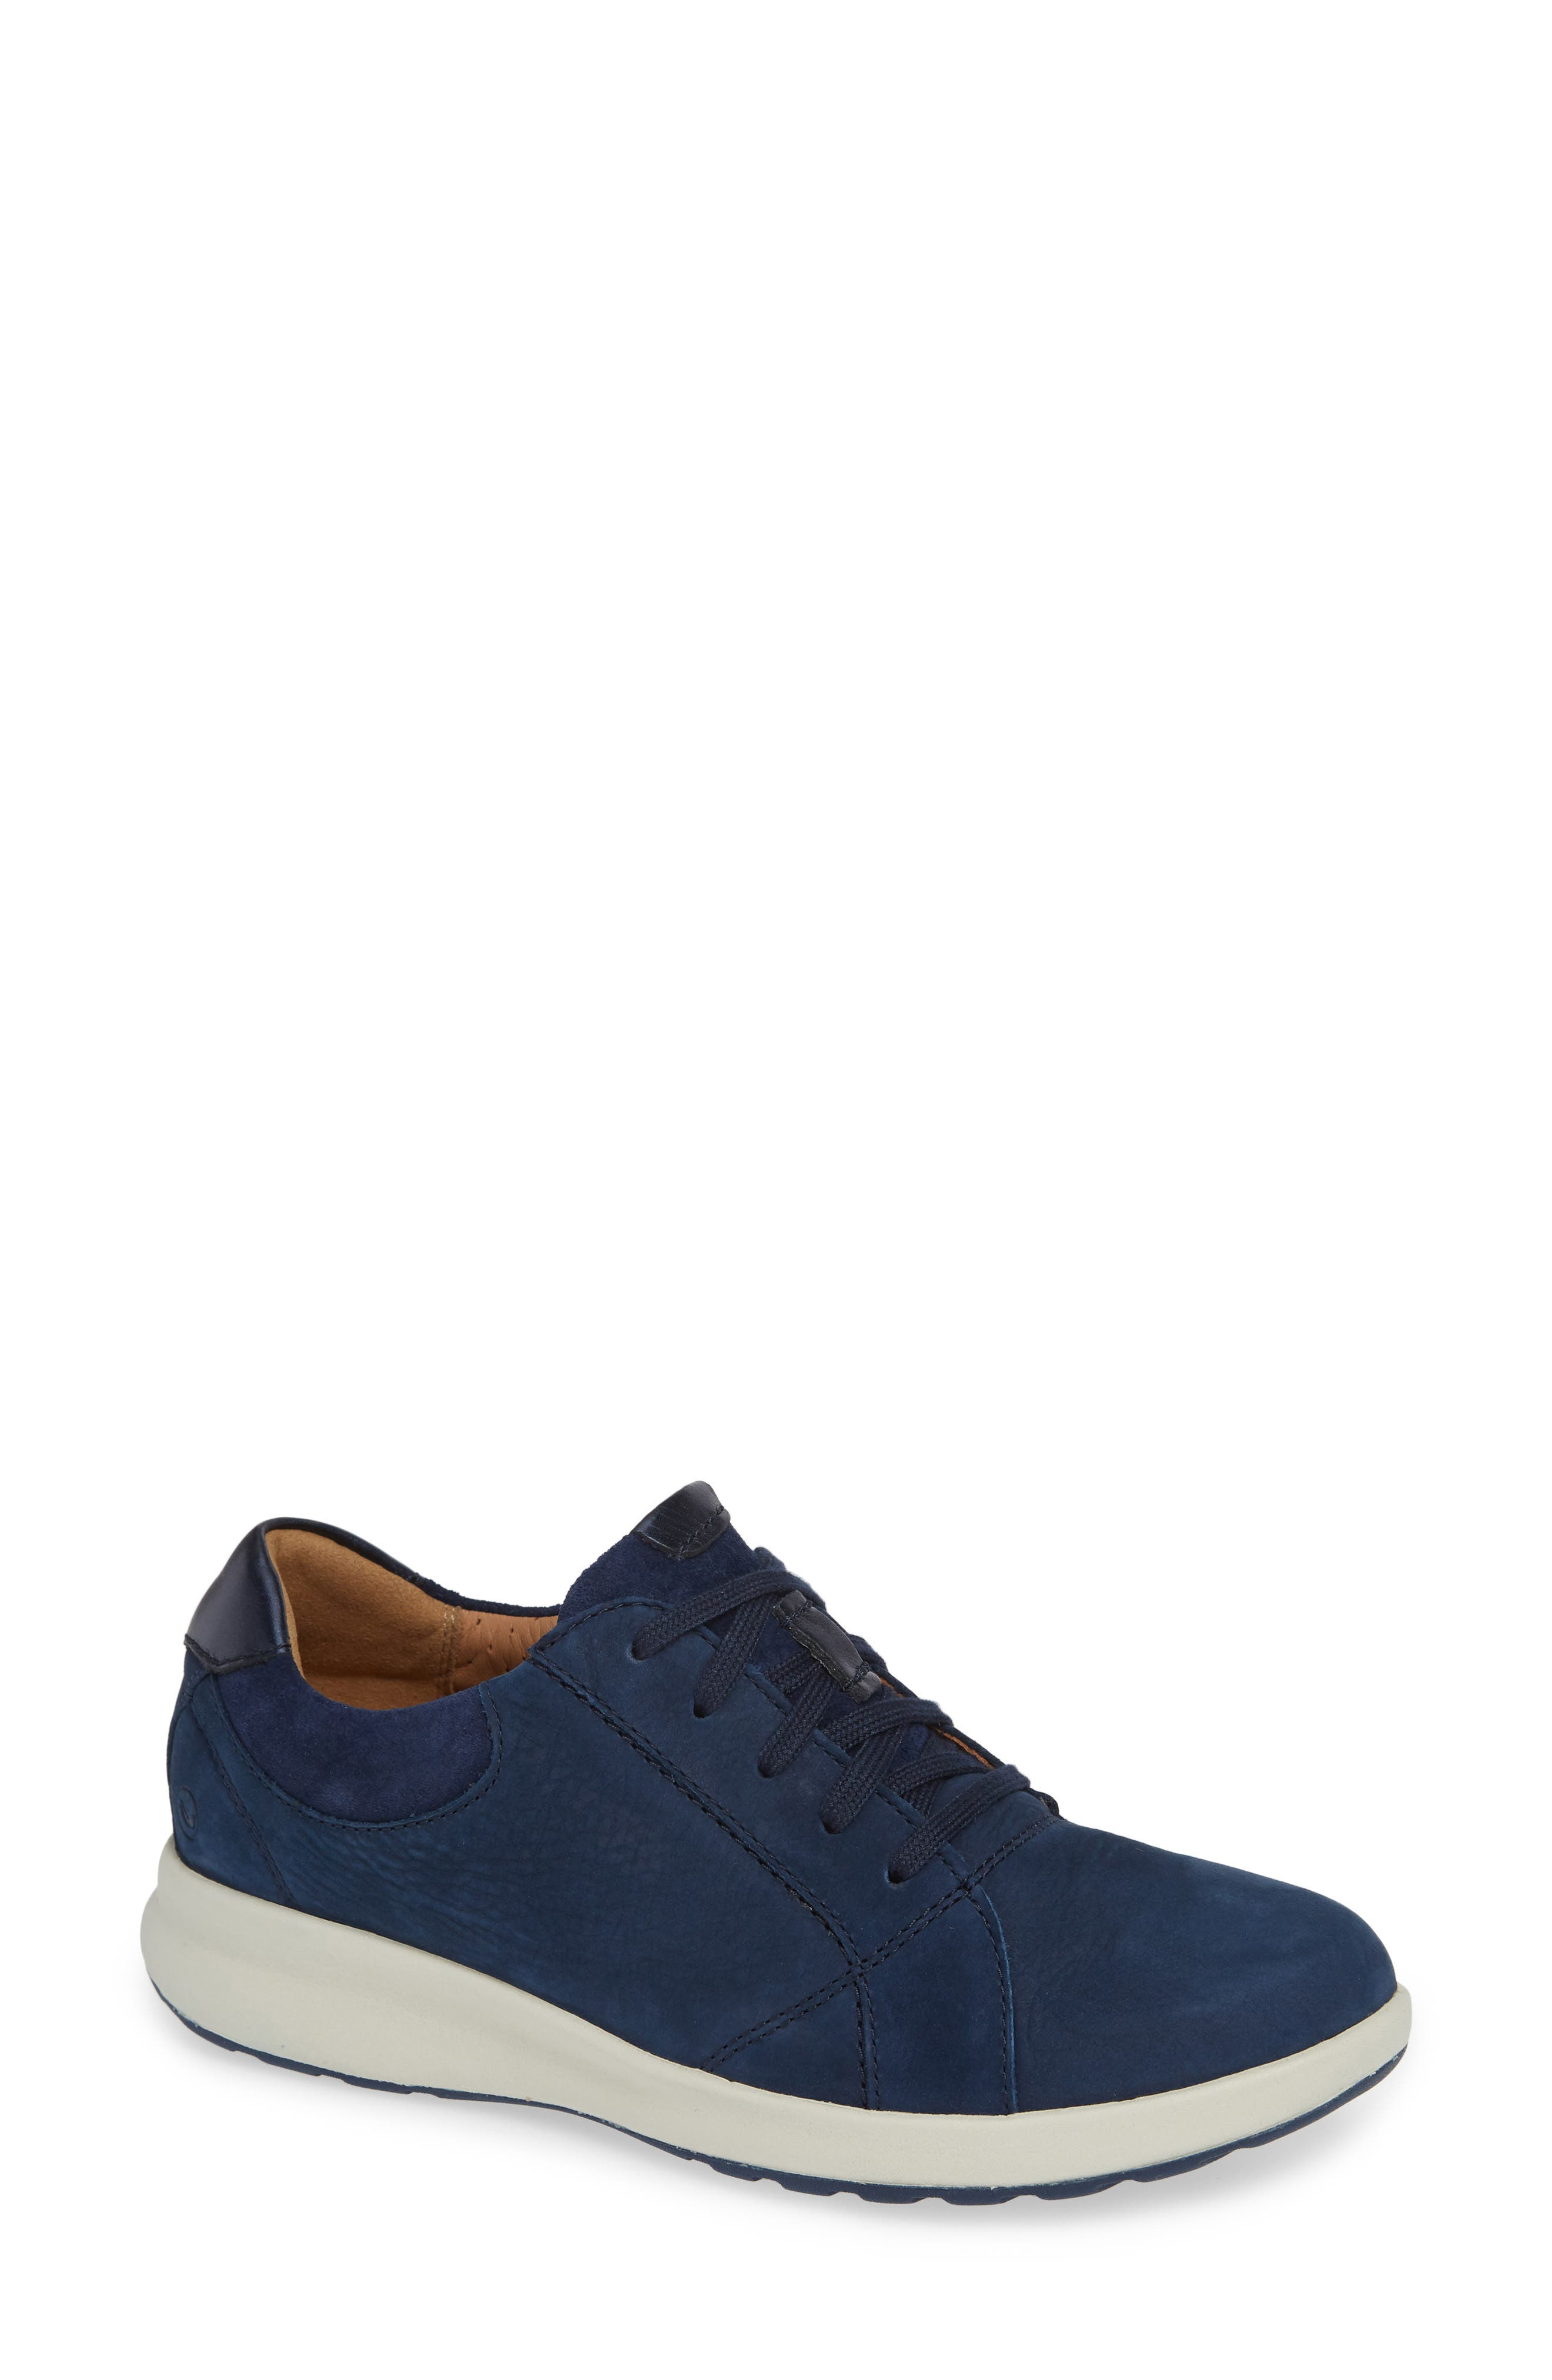 UnAdorn Lace-Up Sneaker,                             Main thumbnail 1, color,                             NAVY NUBUCK